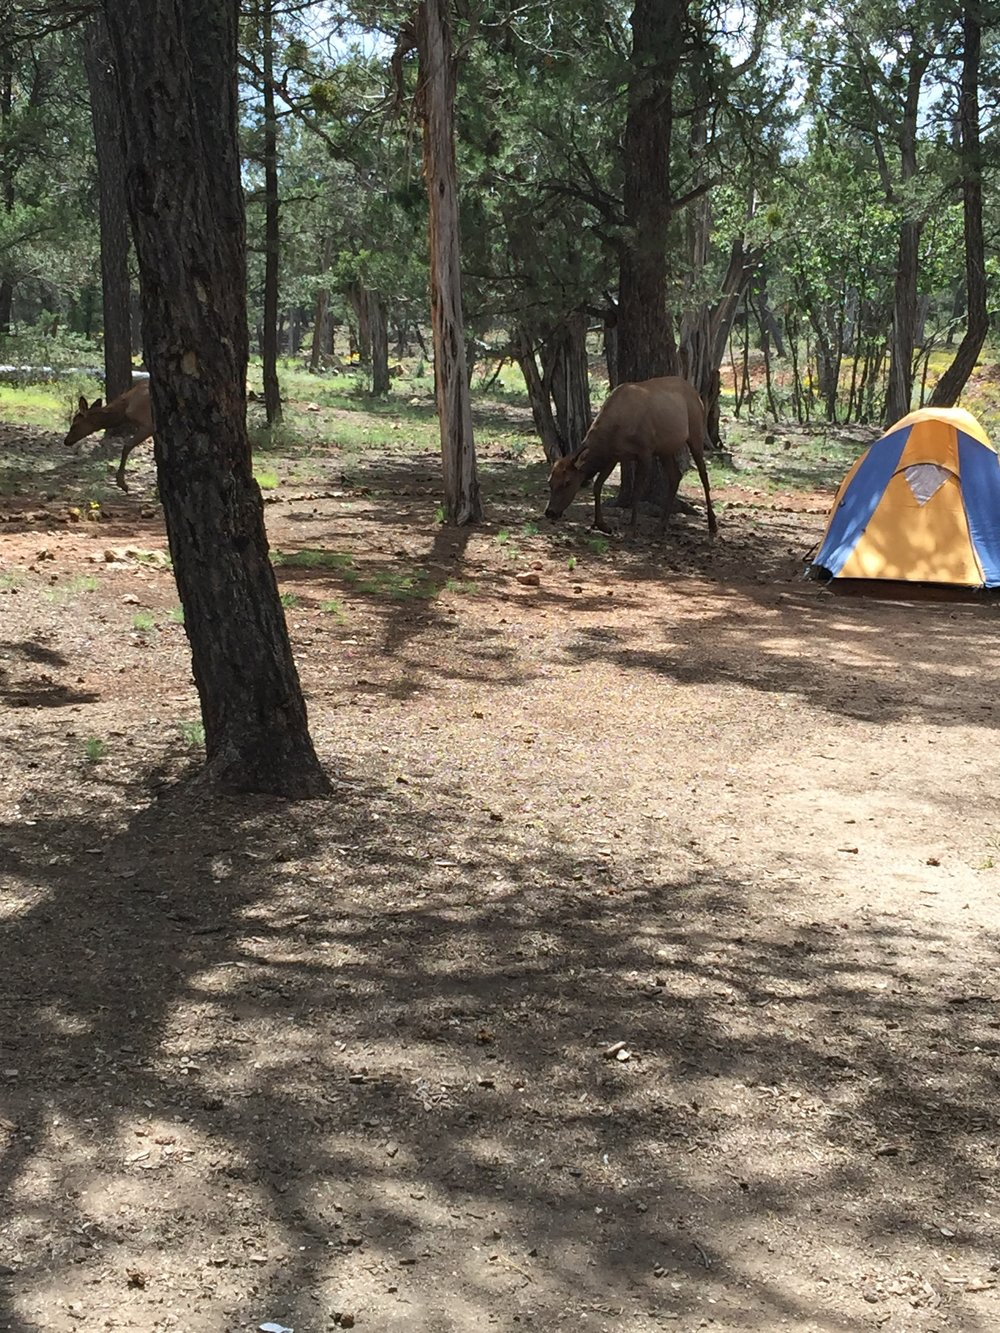 Camping in Grand Canyon National Park. Don't mind the Elk.